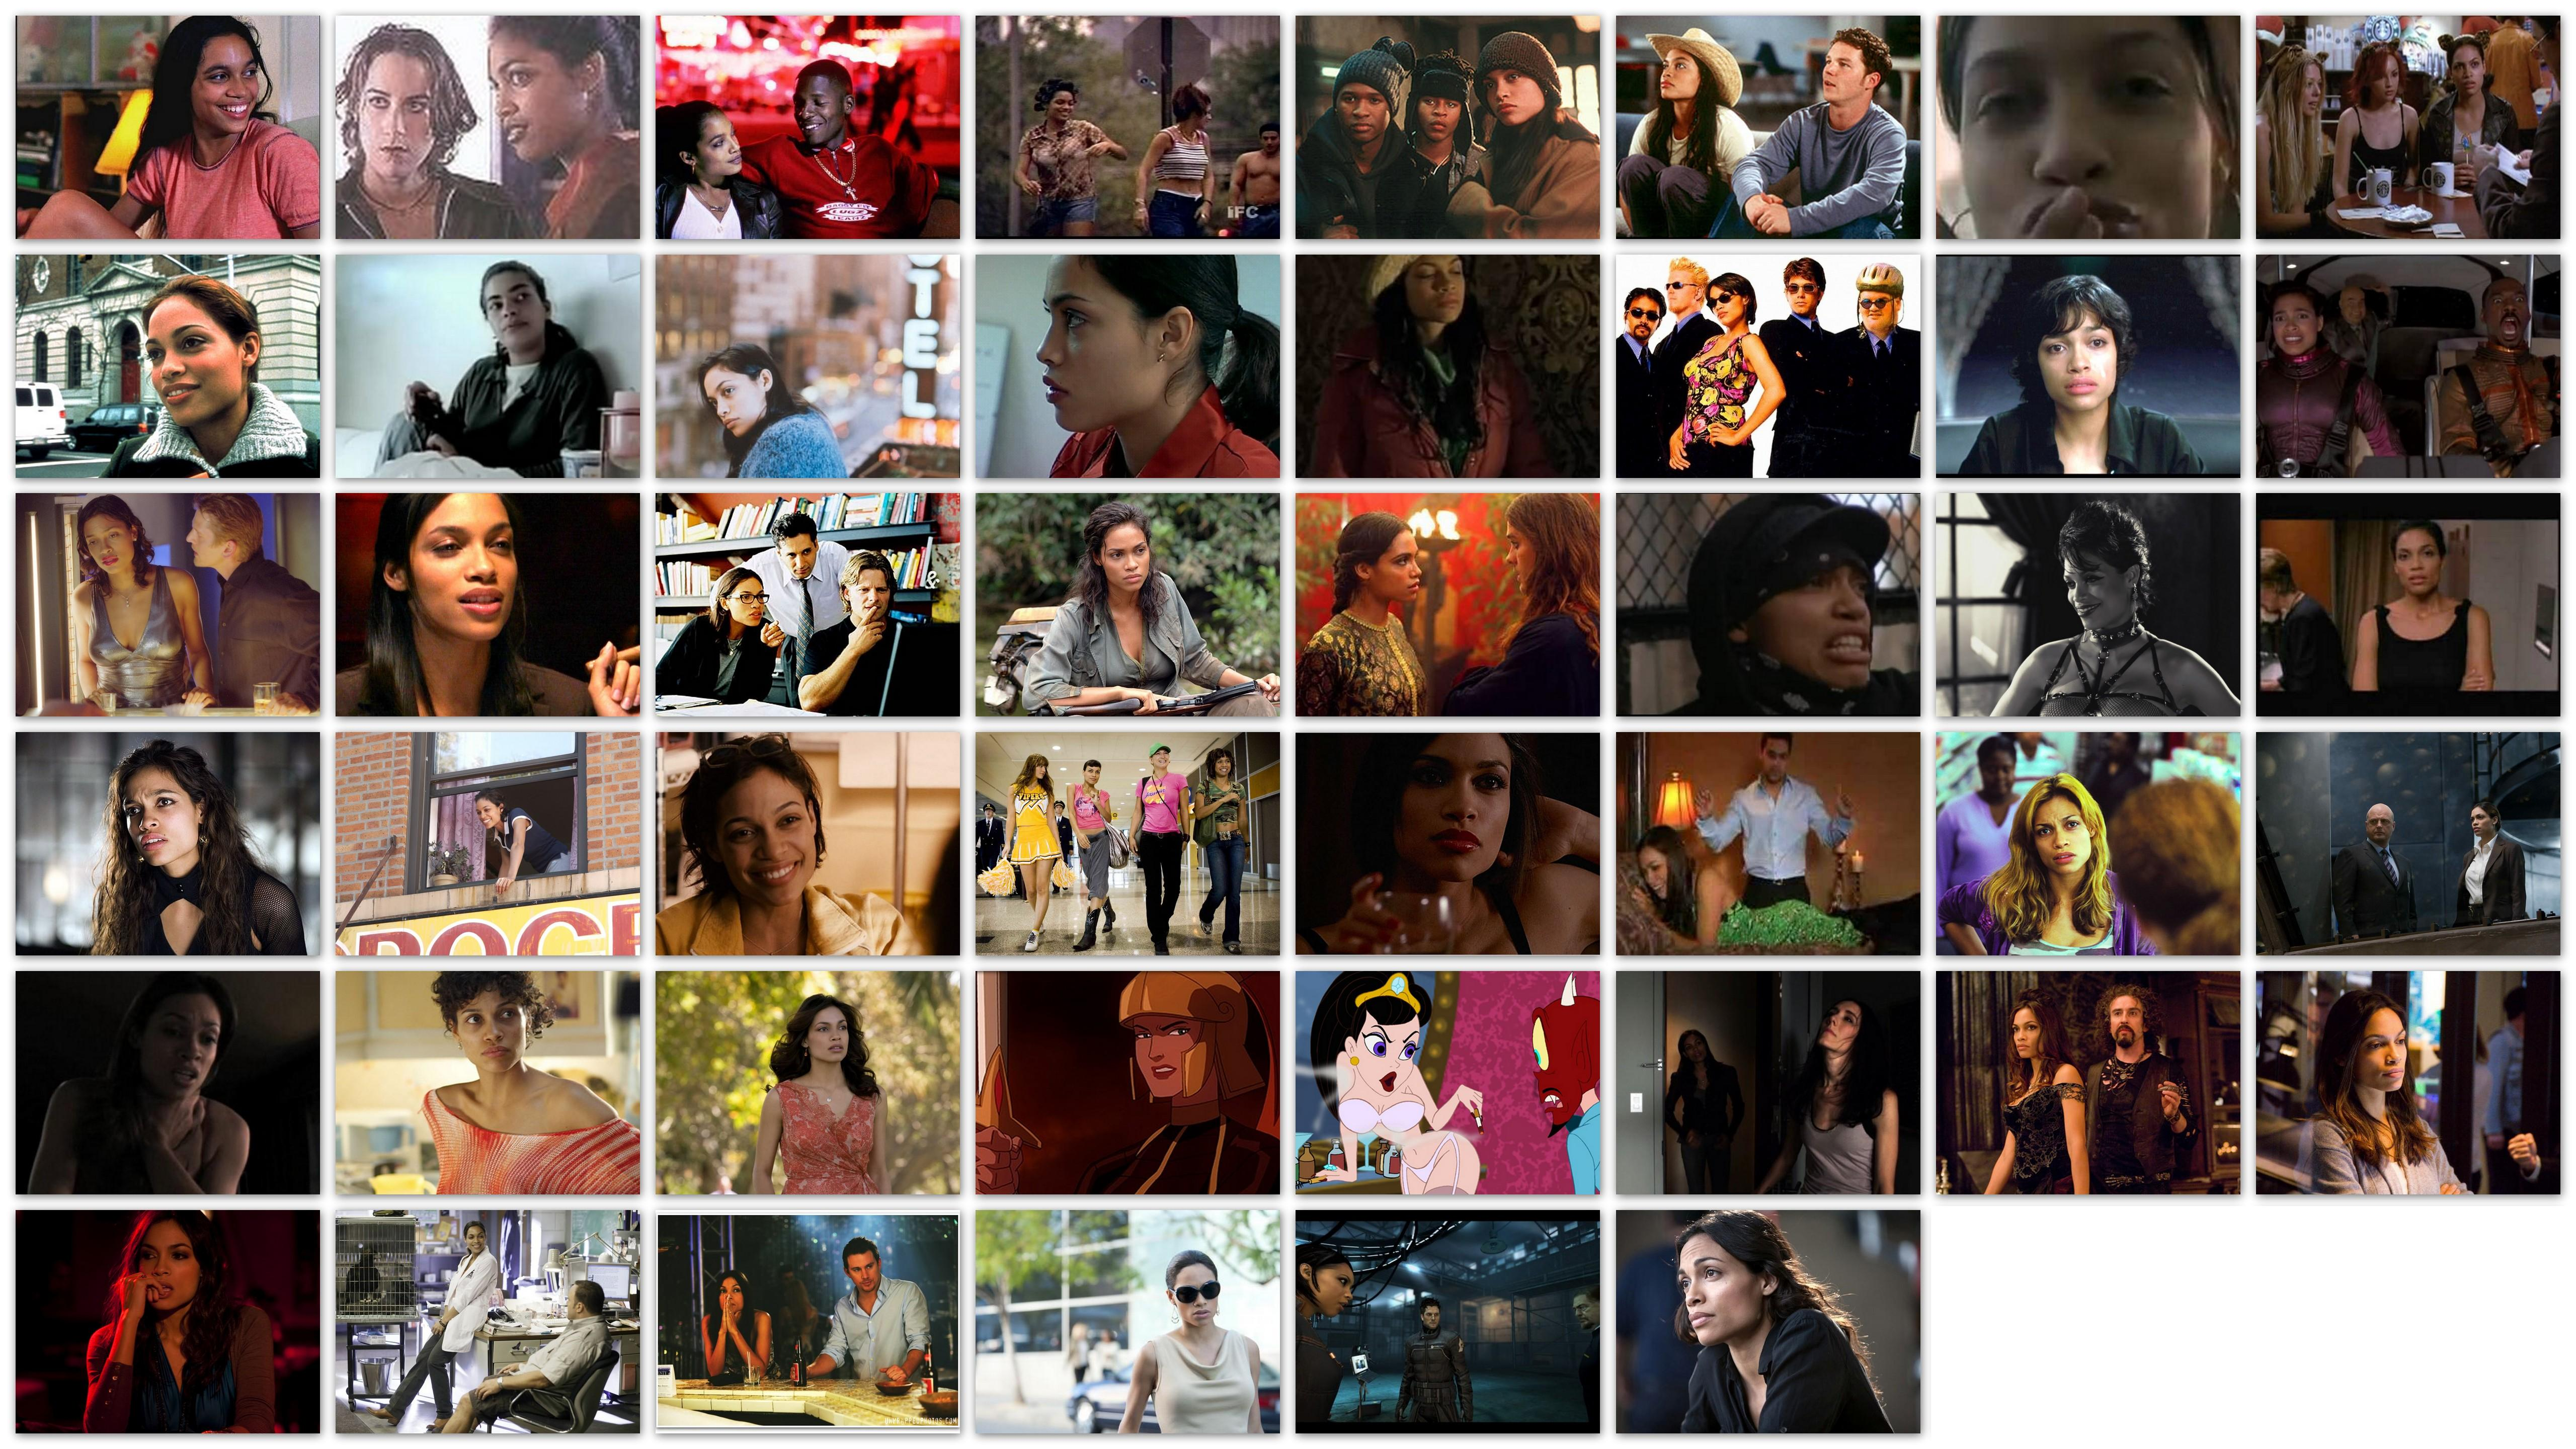 Overview roles of Rosario Dawson